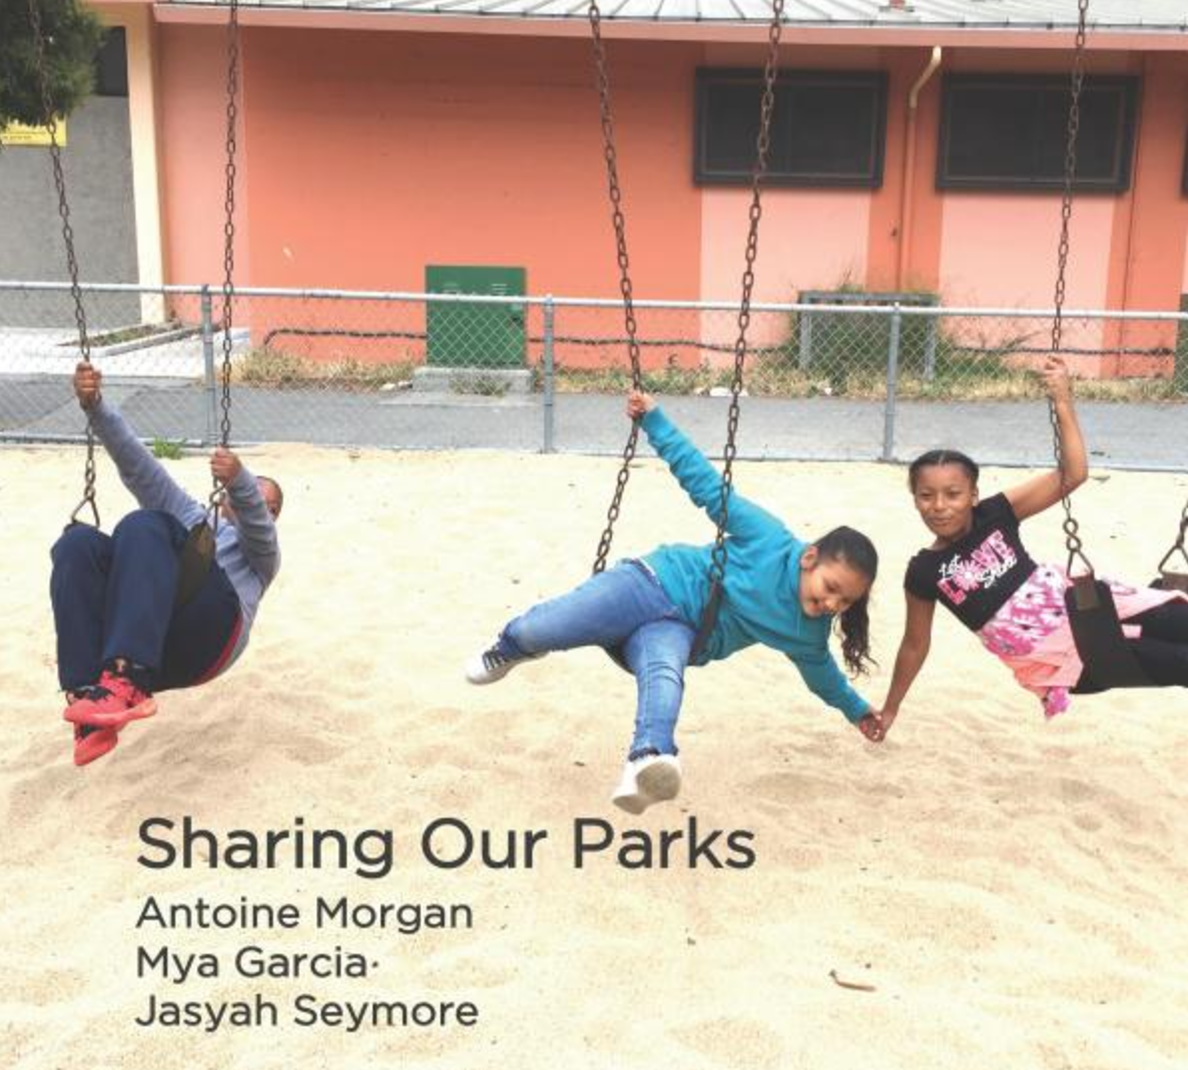 Sharing Our Parks   Jasyah, Mya, and Antoine love Hamiltion Park. It takes work and care to make sure the park is safe and clean for everyone to enjoy. Read along and learn what you can do to take care of your favorite park!   Buy this book.